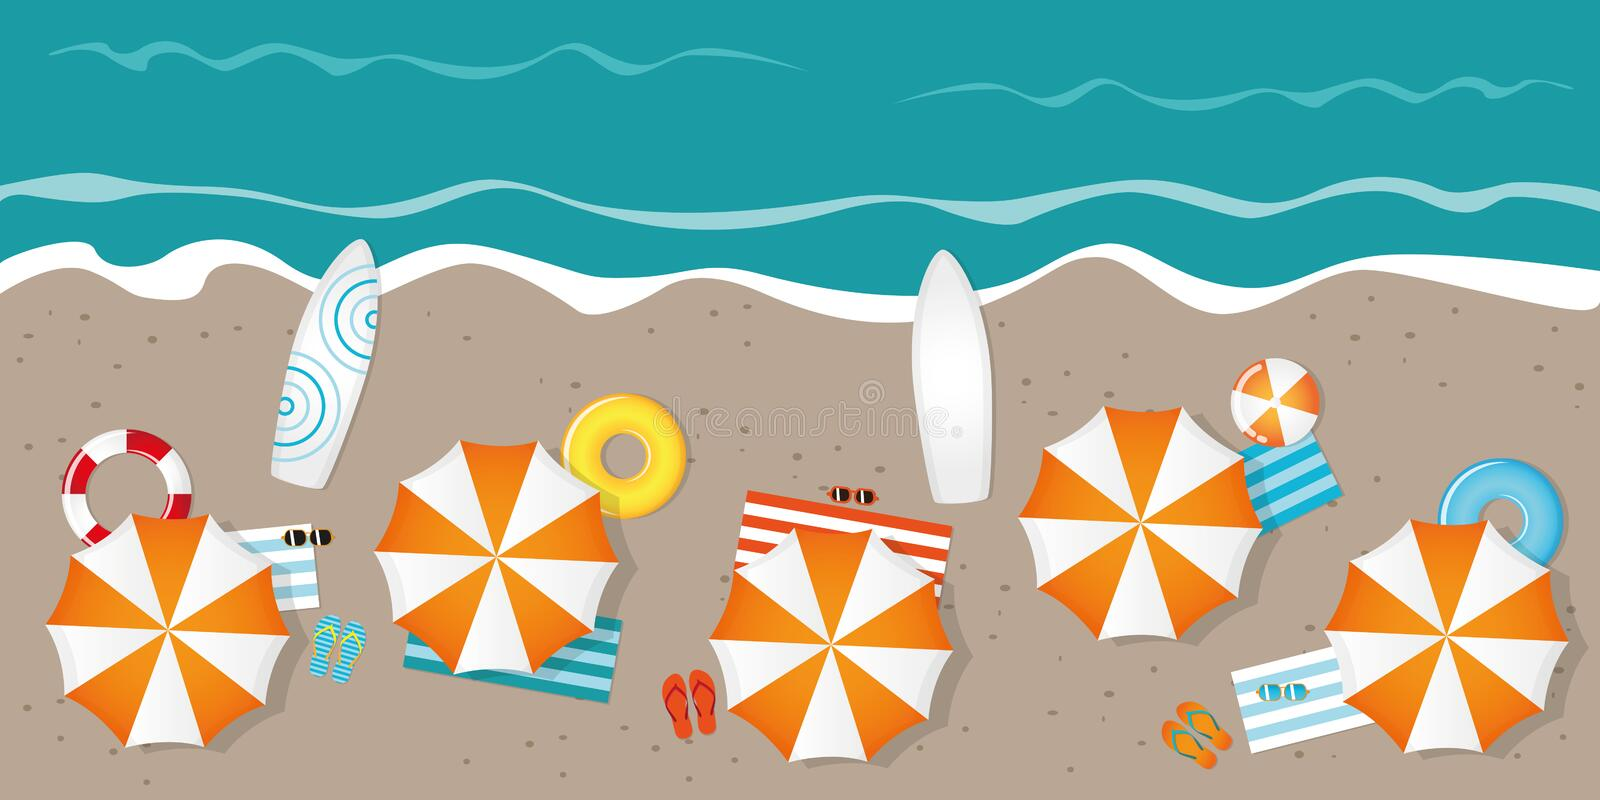 Tourist beach with umbrellas sunglasses and surfboards royalty free illustration